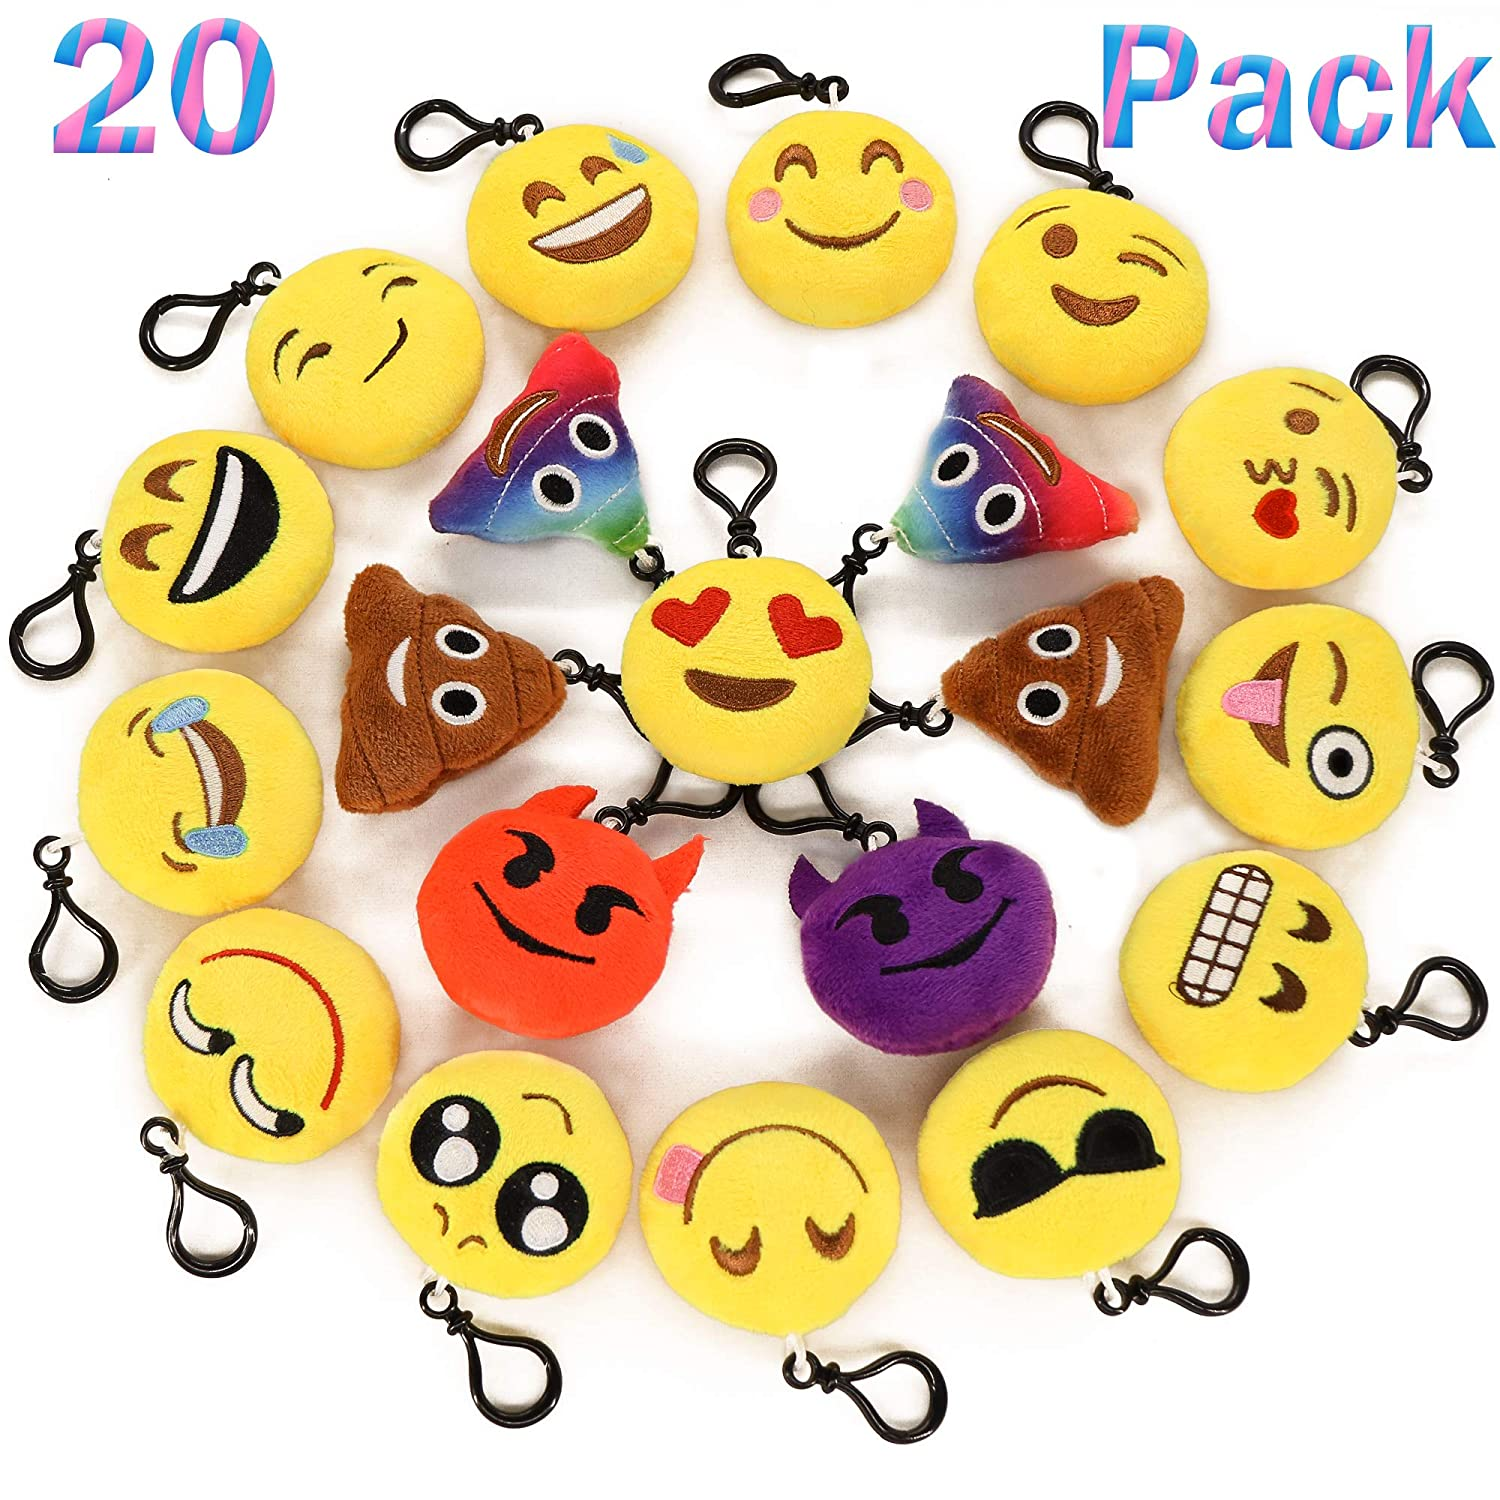 Ivenf Pack of 20 5cm/2' mini Emoji Keychain Cushion Pillows Set Party Supplies/Clawmachine Refill Prizes/Pinata Filler, Extra Poop SYNCHKG108653